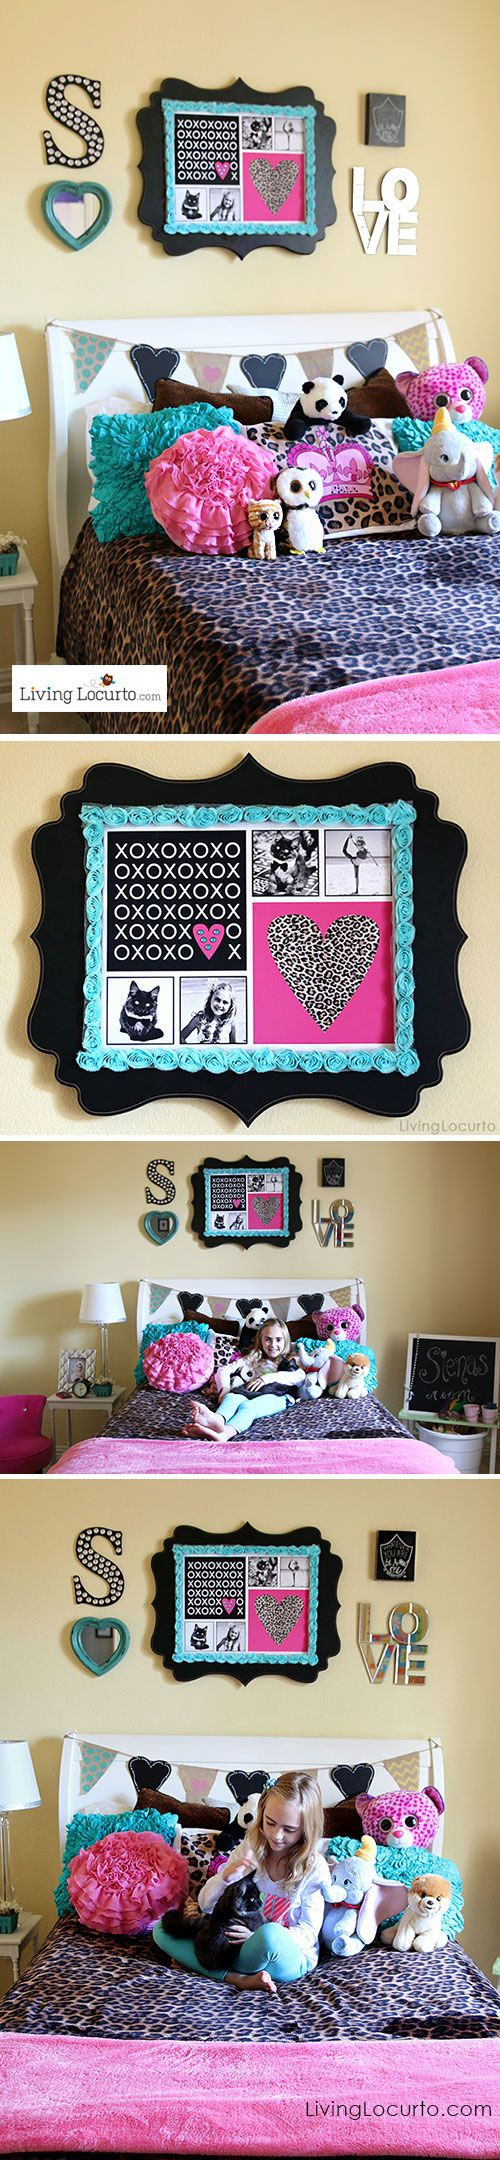 Girls bedroom wall art ideas girls picture layouts and beanie boos